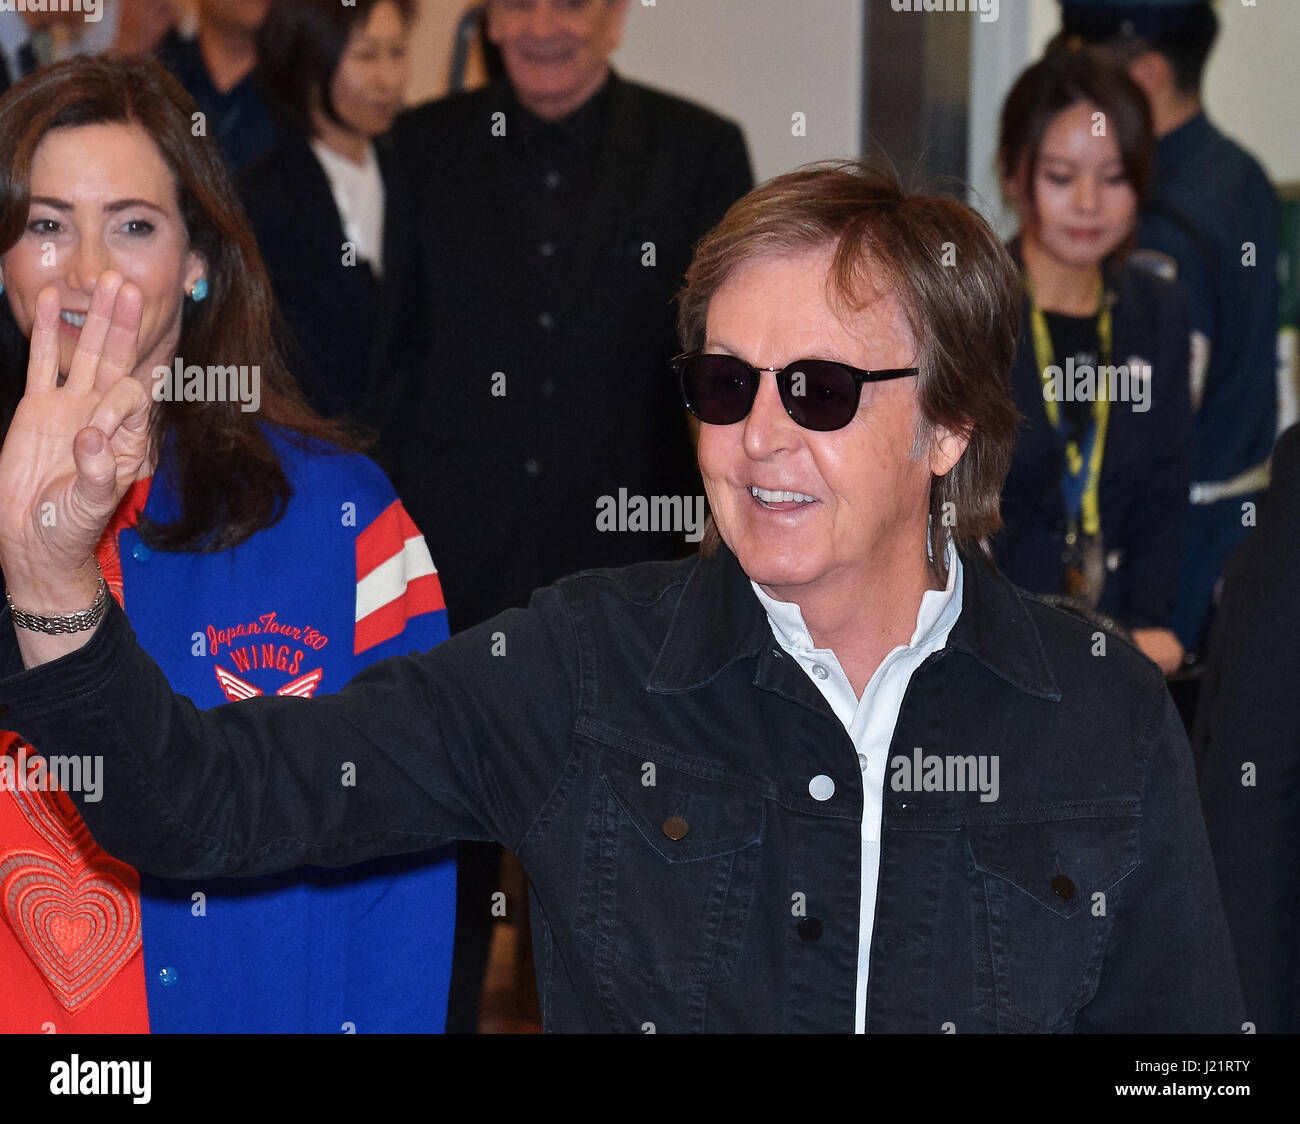 23rd Apr 2017 Paul McCartney Tokyo Japan April 23 Sir Arrives At International Airport In On